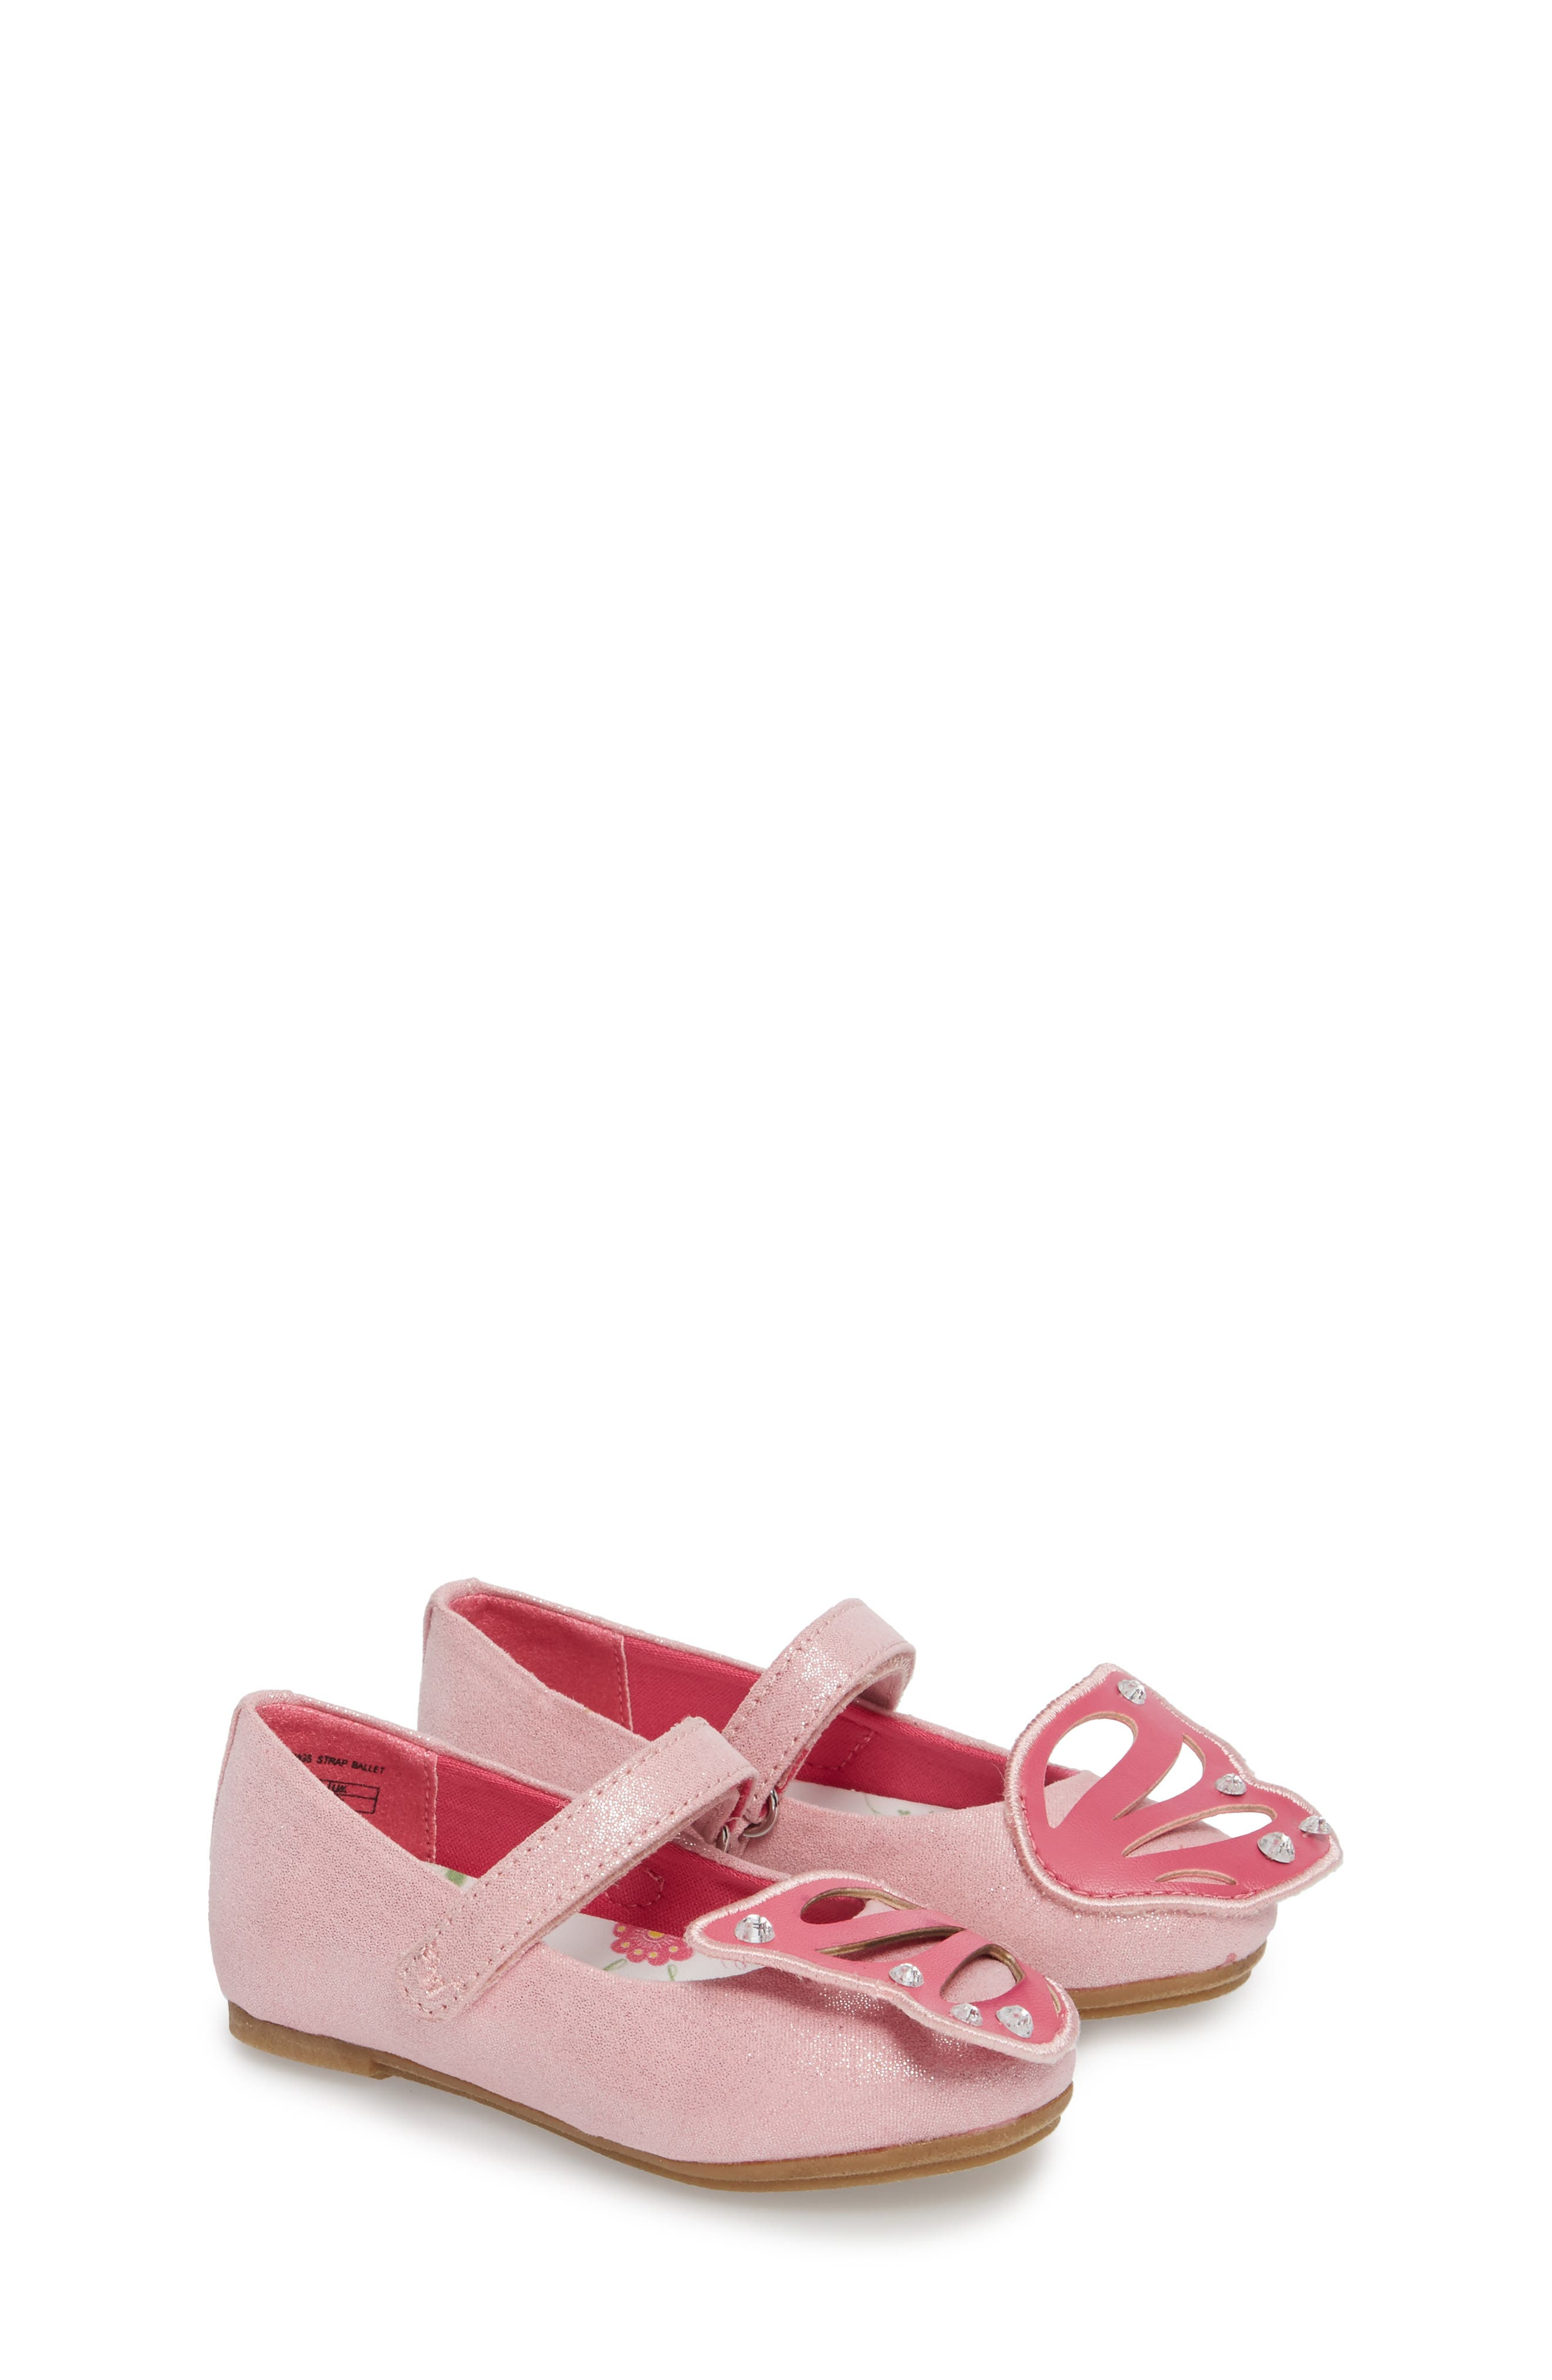 WELLIEWISHERS FROM AMERICAN GIRL,                             Flutter Wings Embellished Ballet Flat,                             Main thumbnail 1, color,                             650